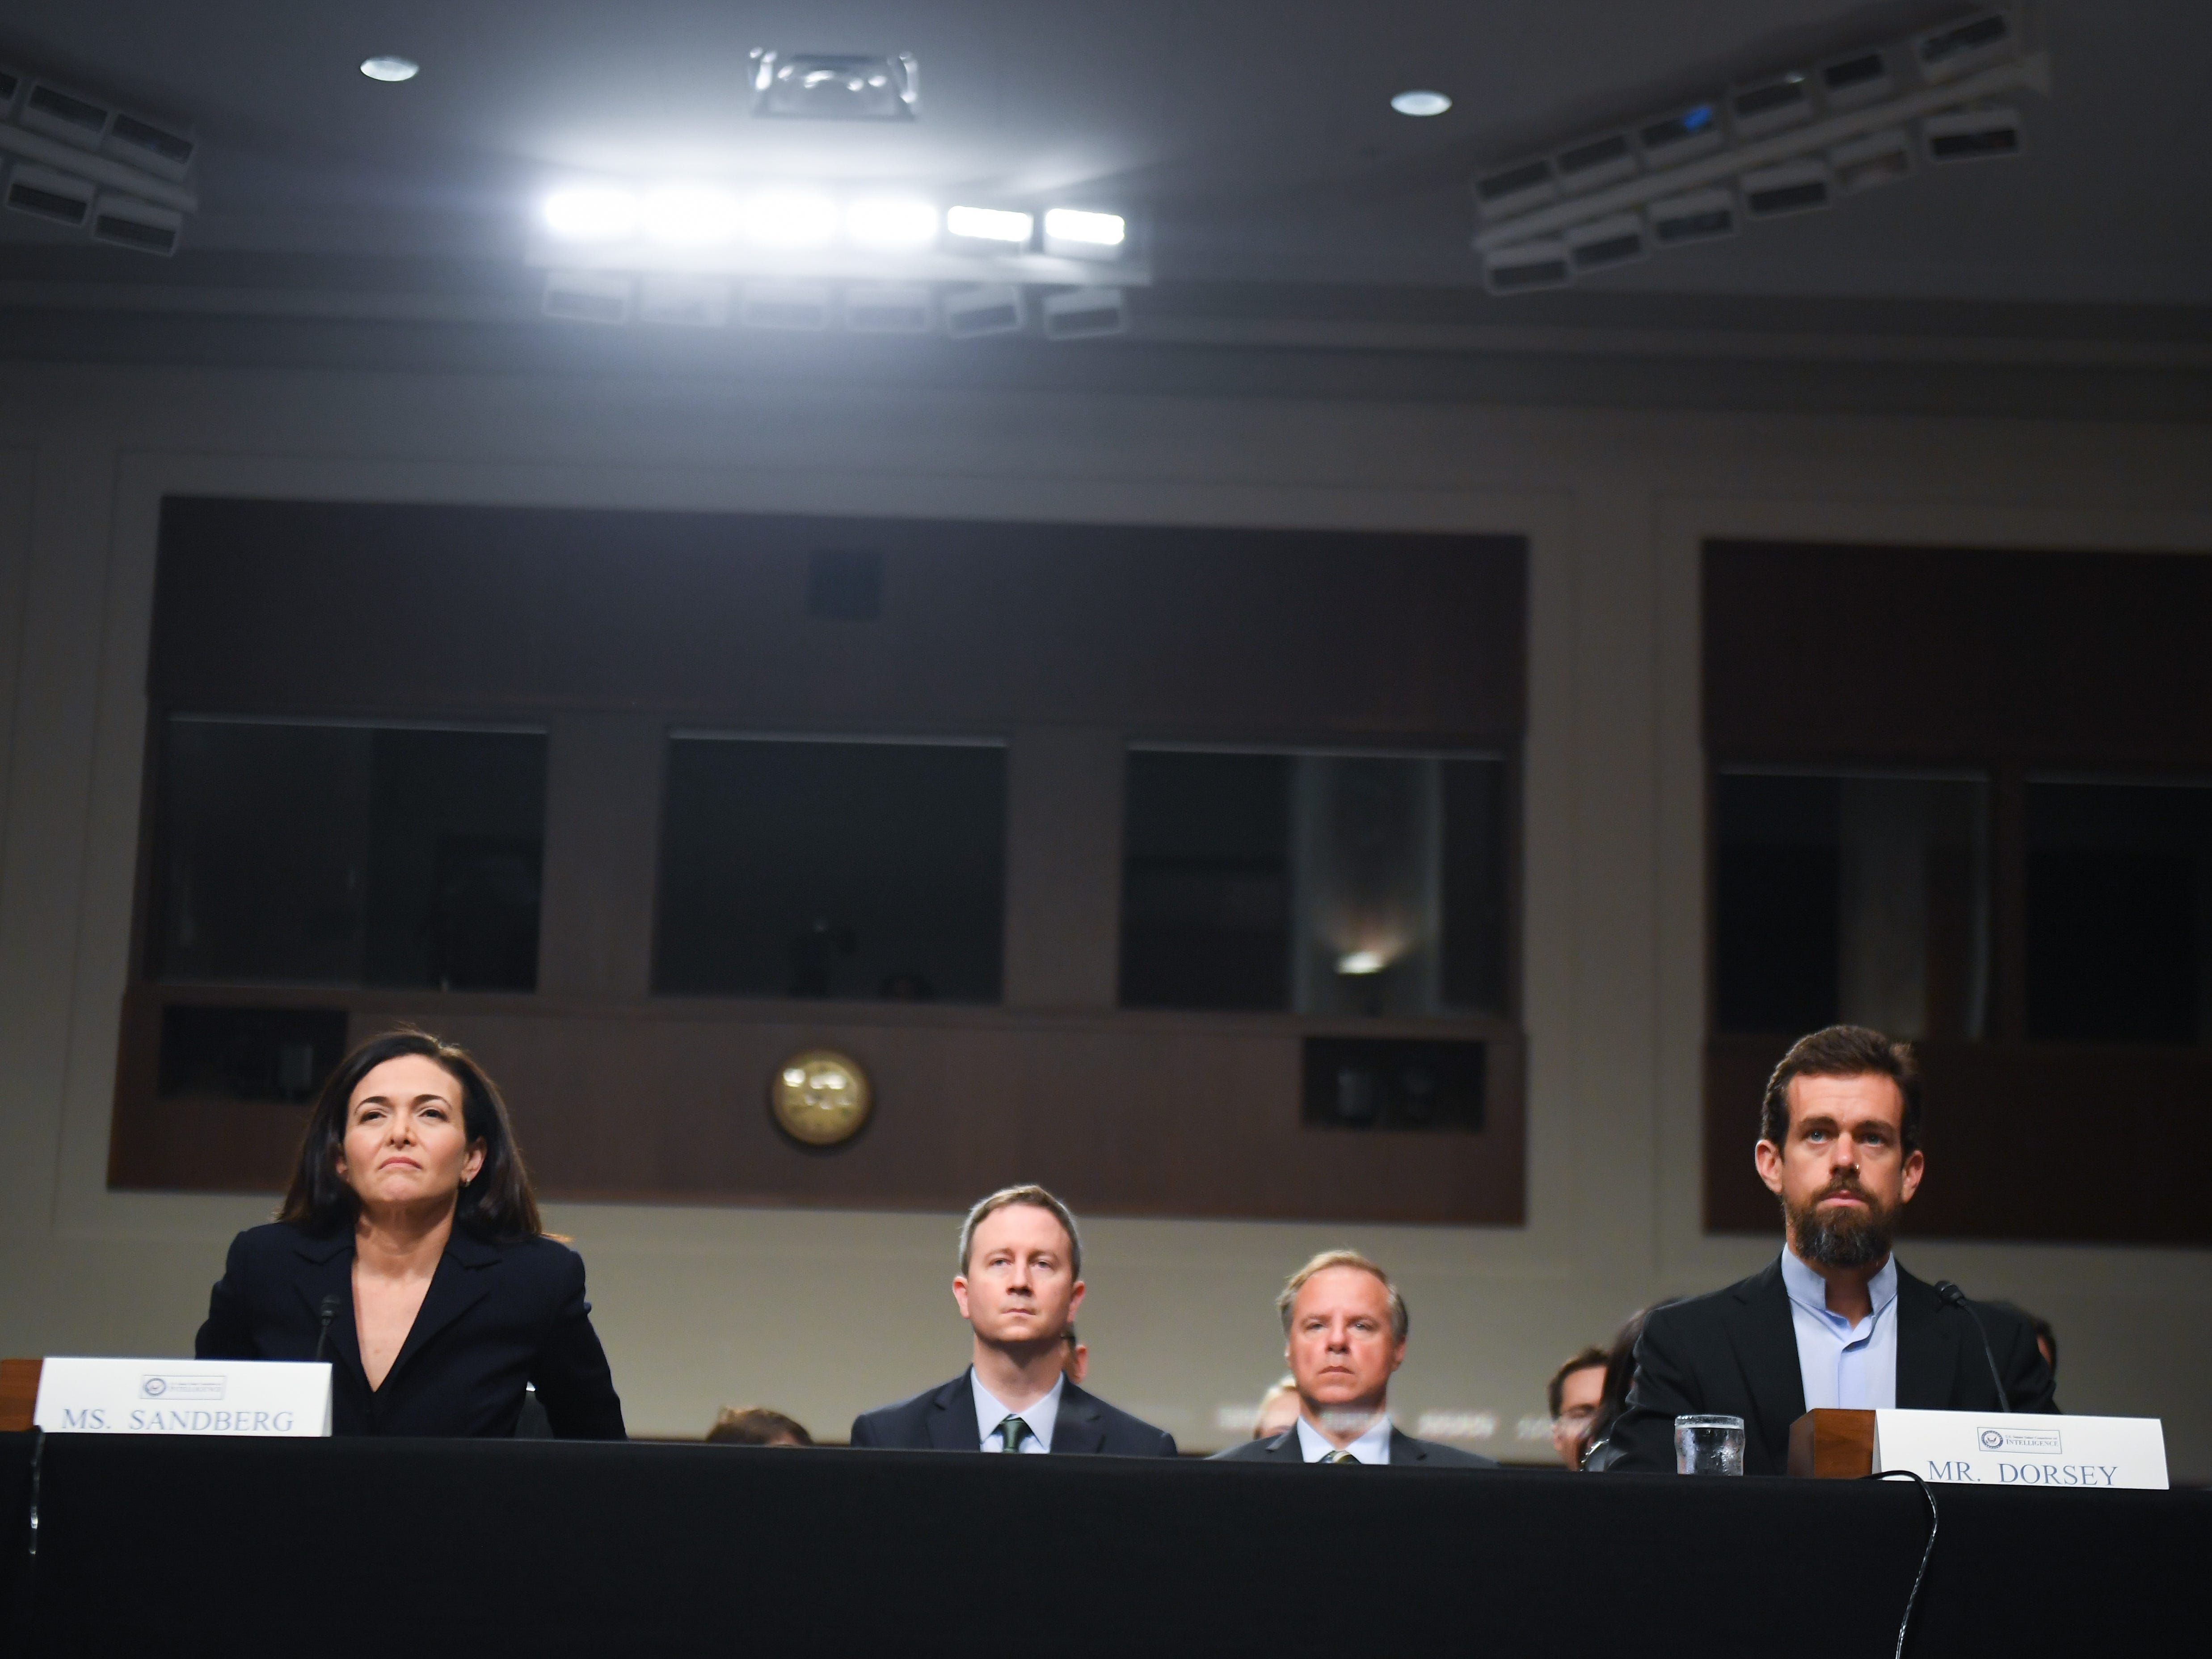 9/5/18 9:38:38 AM -- Washington, DC, U.S.A  -- Sheryl Sandberg, chief operating officer of Facebook Inc., and Jack Dorsey, chief executive officer of Twitter Inc., testify before the Senate Select Committee on Intelligence during a hearing on Foreign Influence Operations' Use of Social Media Platforms on Sept. 5, 2018 in Washington.  --    Photo by Jack Gruber, USA TODAY Staff ORG XMIT:  JG 137441 Social Media Hea 9/5/ (Via OlyDrop)